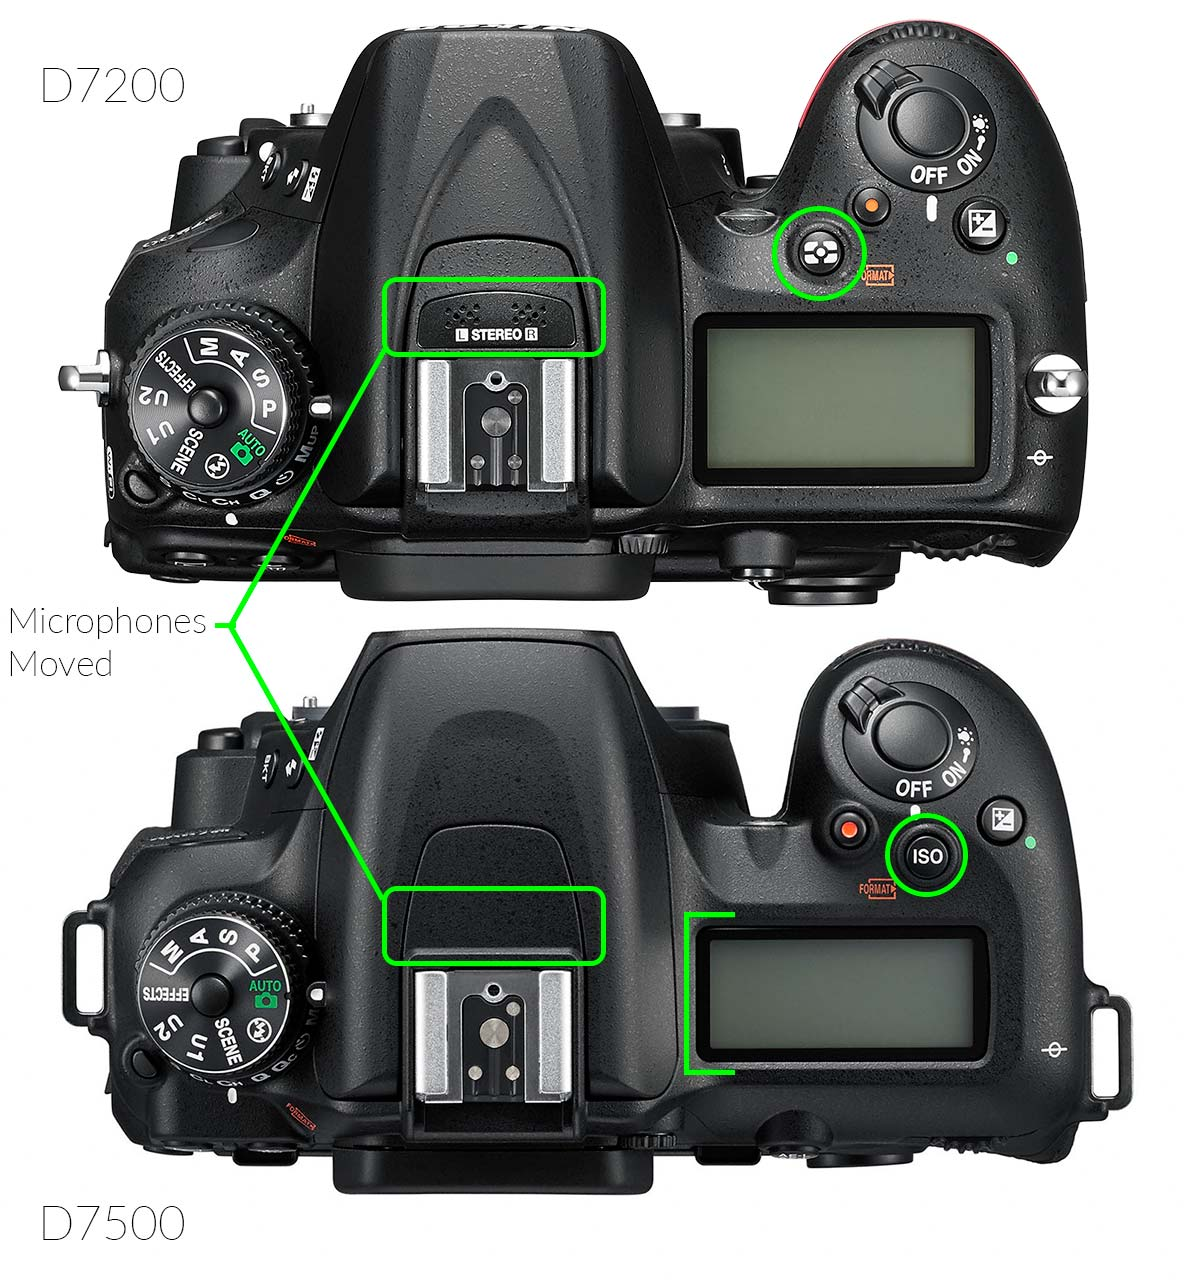 Nikon D7500 vs D7200: What's the Difference? – Light And Matter